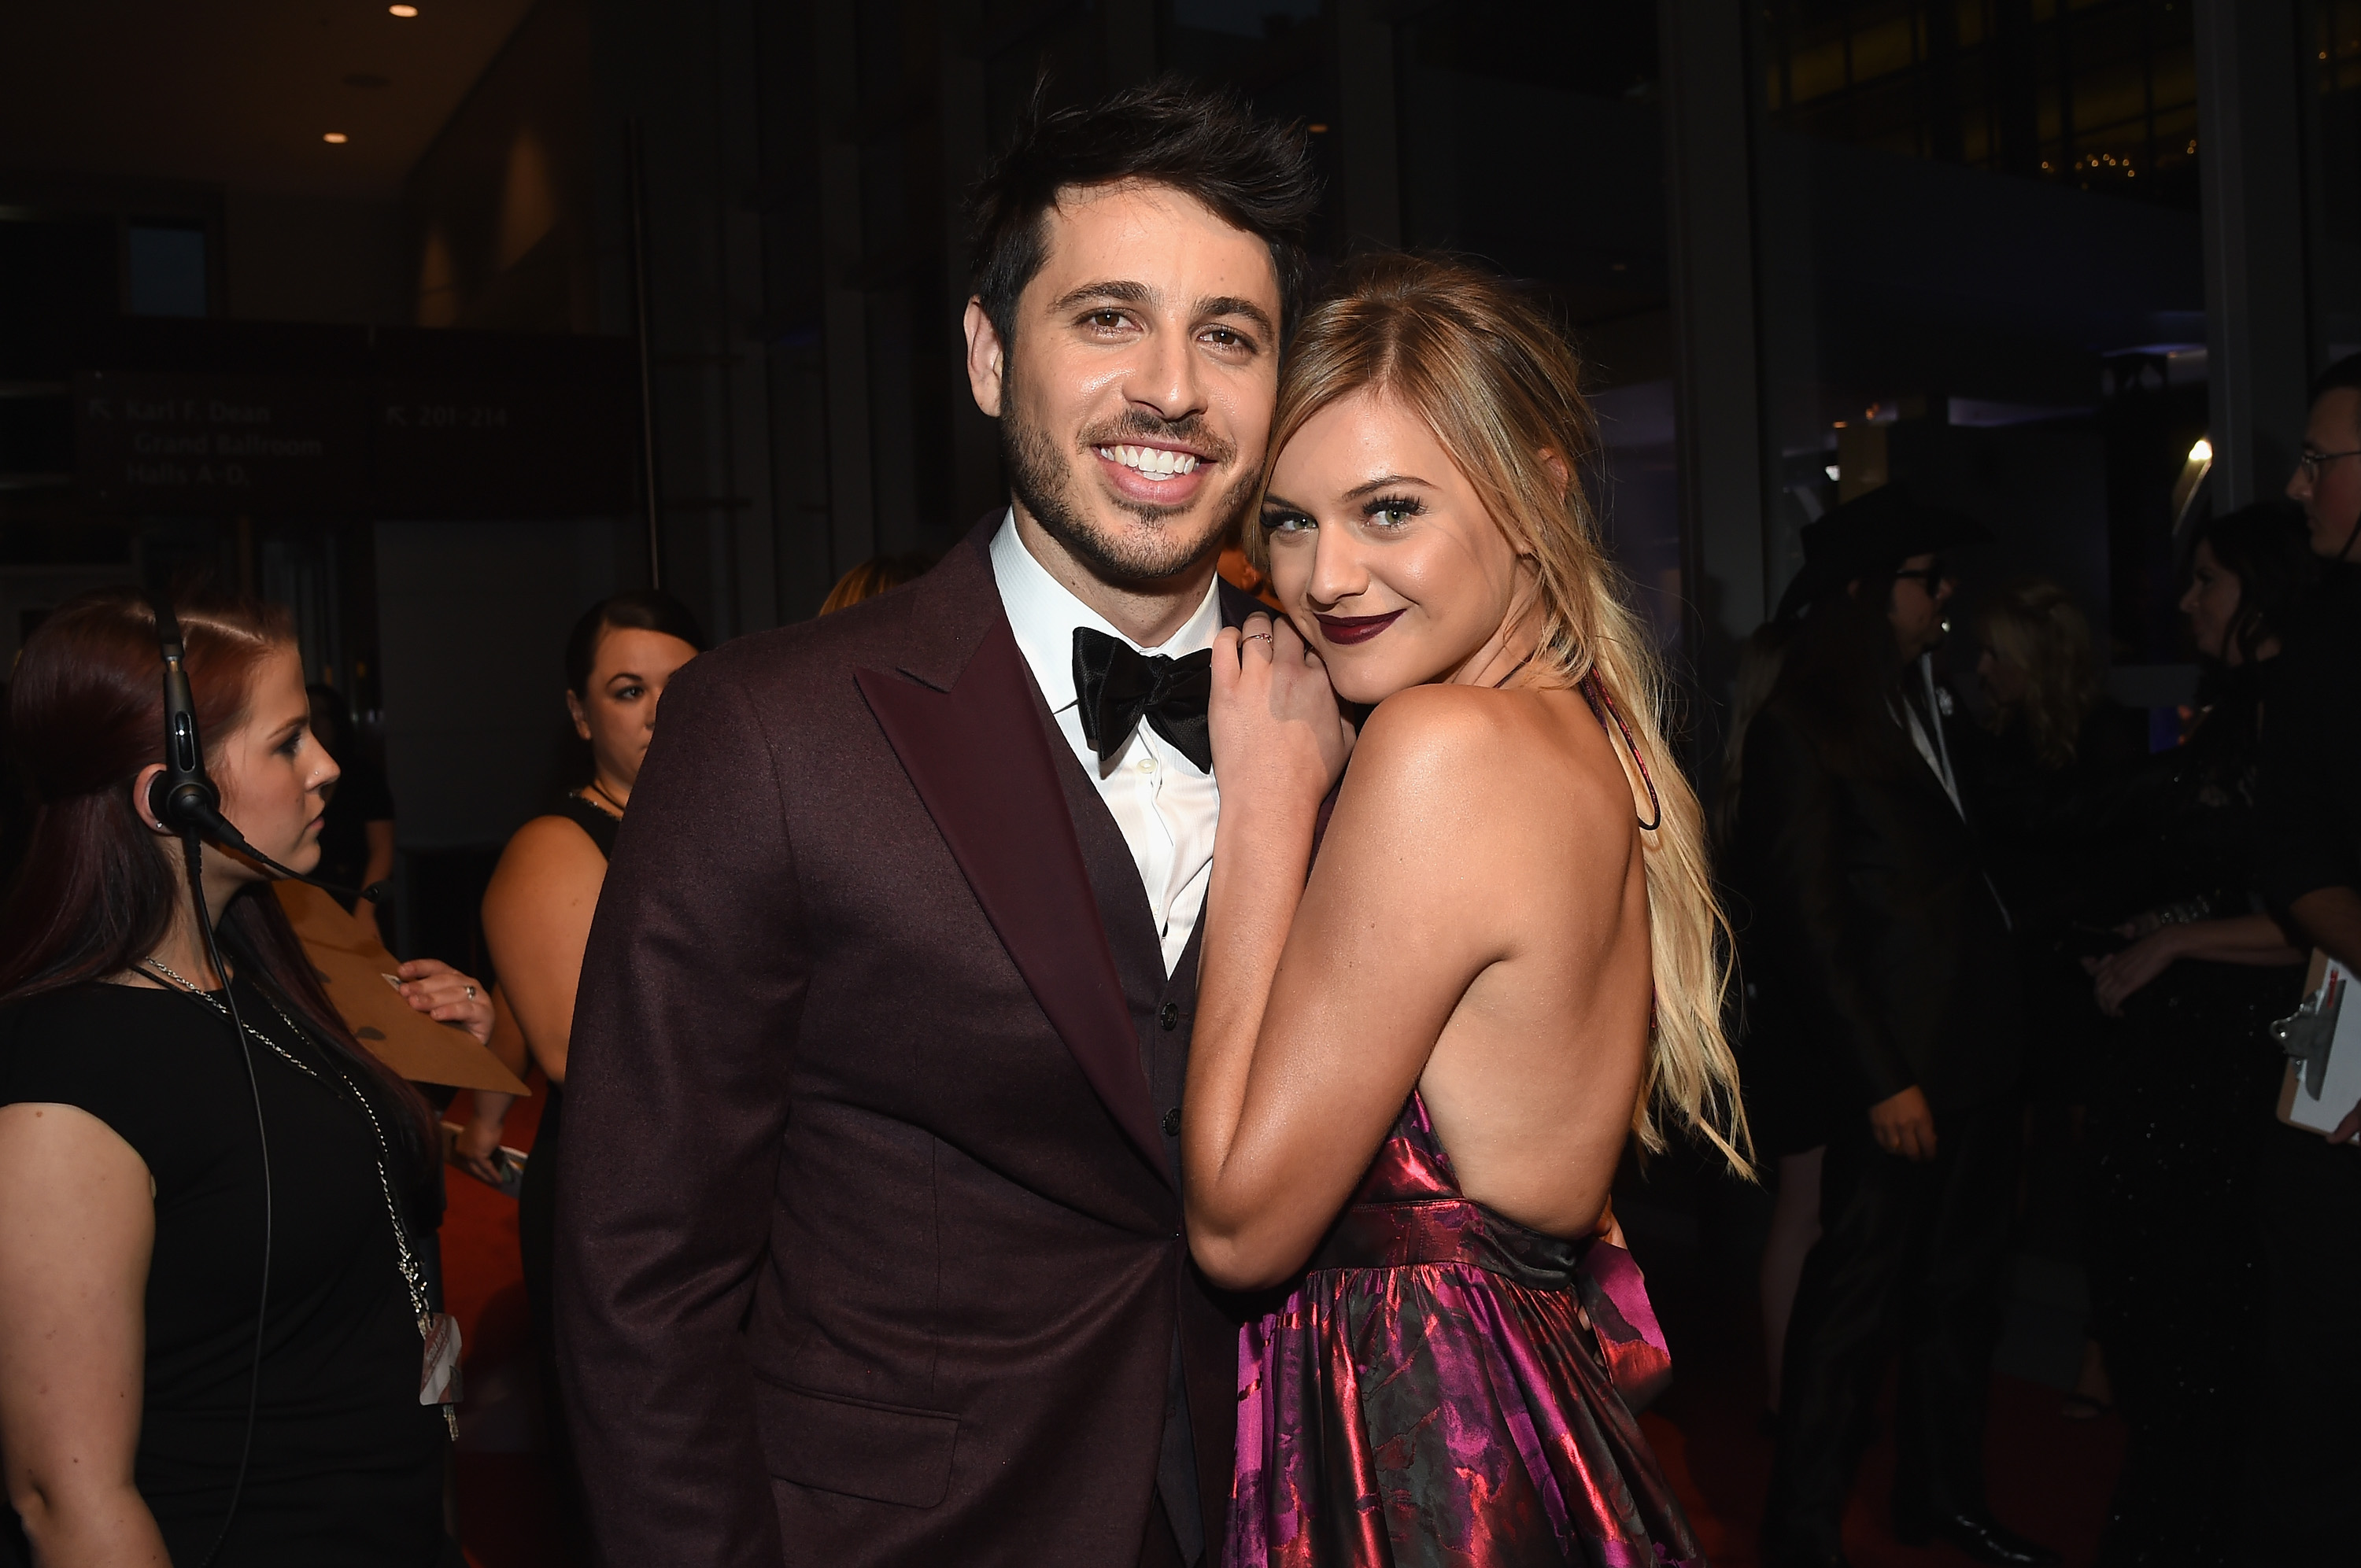 Kelsea Ballerini announces engagement on Instagram...but that ring, though!